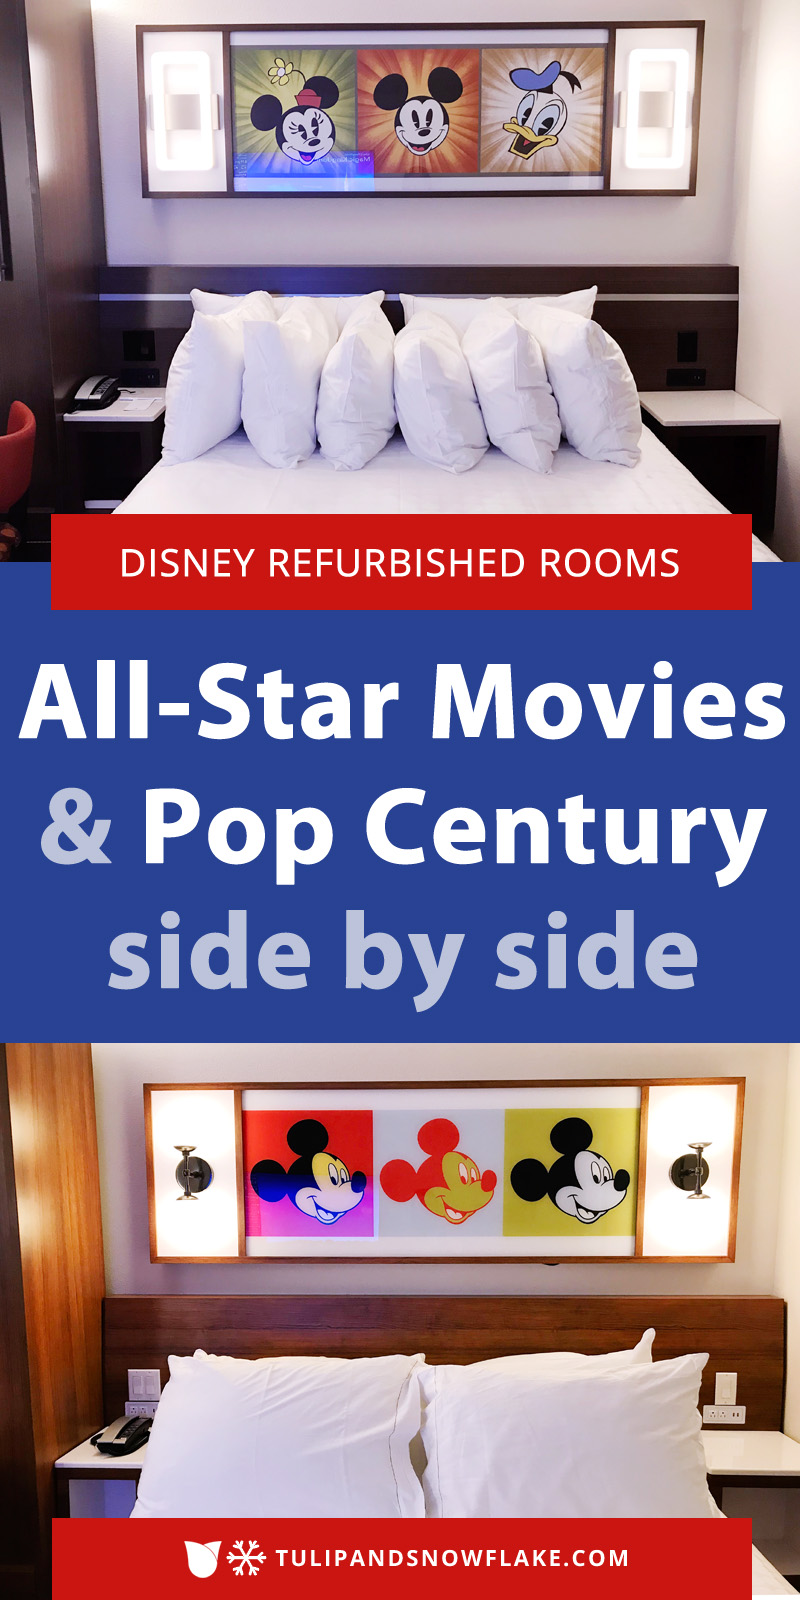 Disney's All-Star Movies and Pop Century Refurbished Rooms side by side